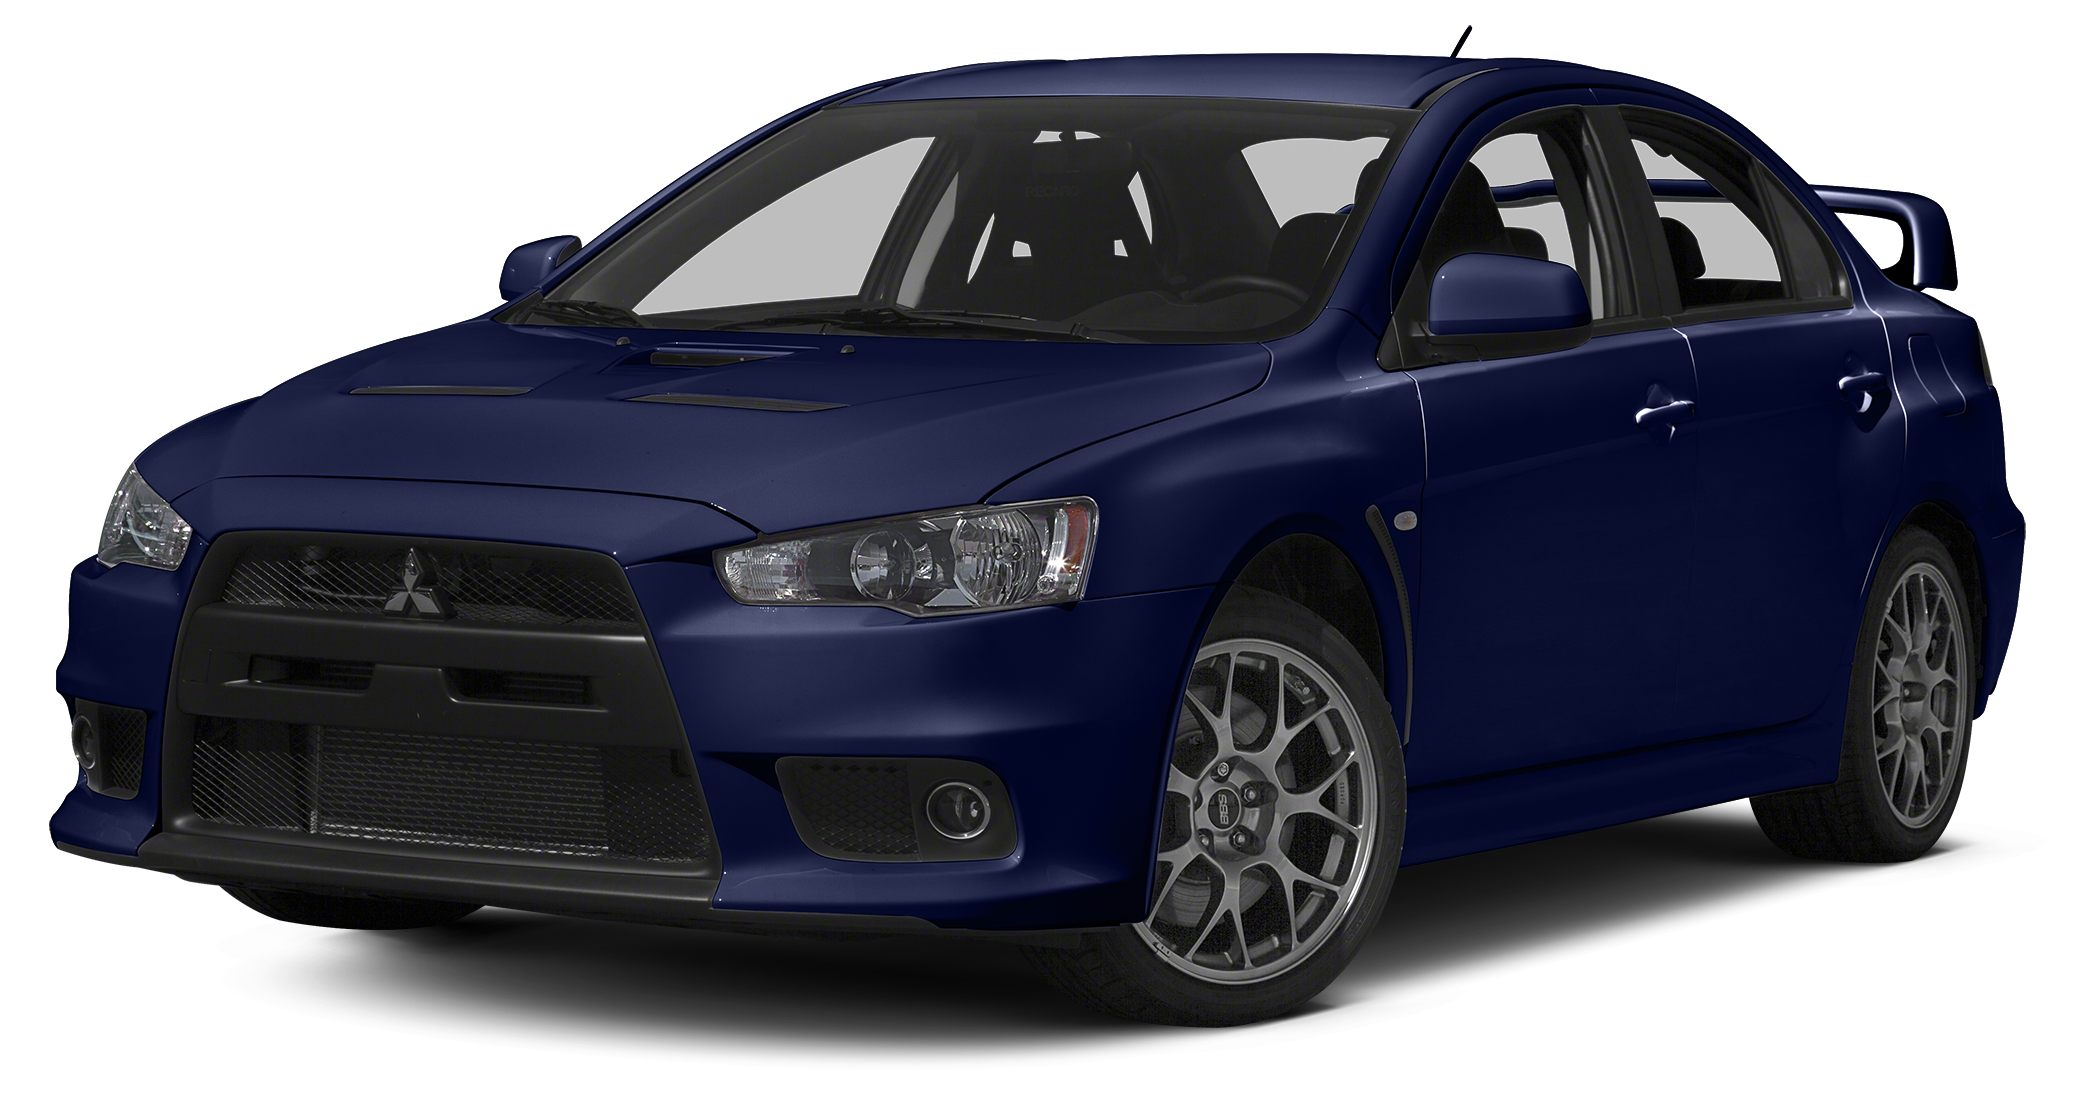 2013 Mitsubishi Lancer Evolution MR WE SELL OUR VEHICLES AT WHOLESALE PRICES AND STAND BEHIND OUR